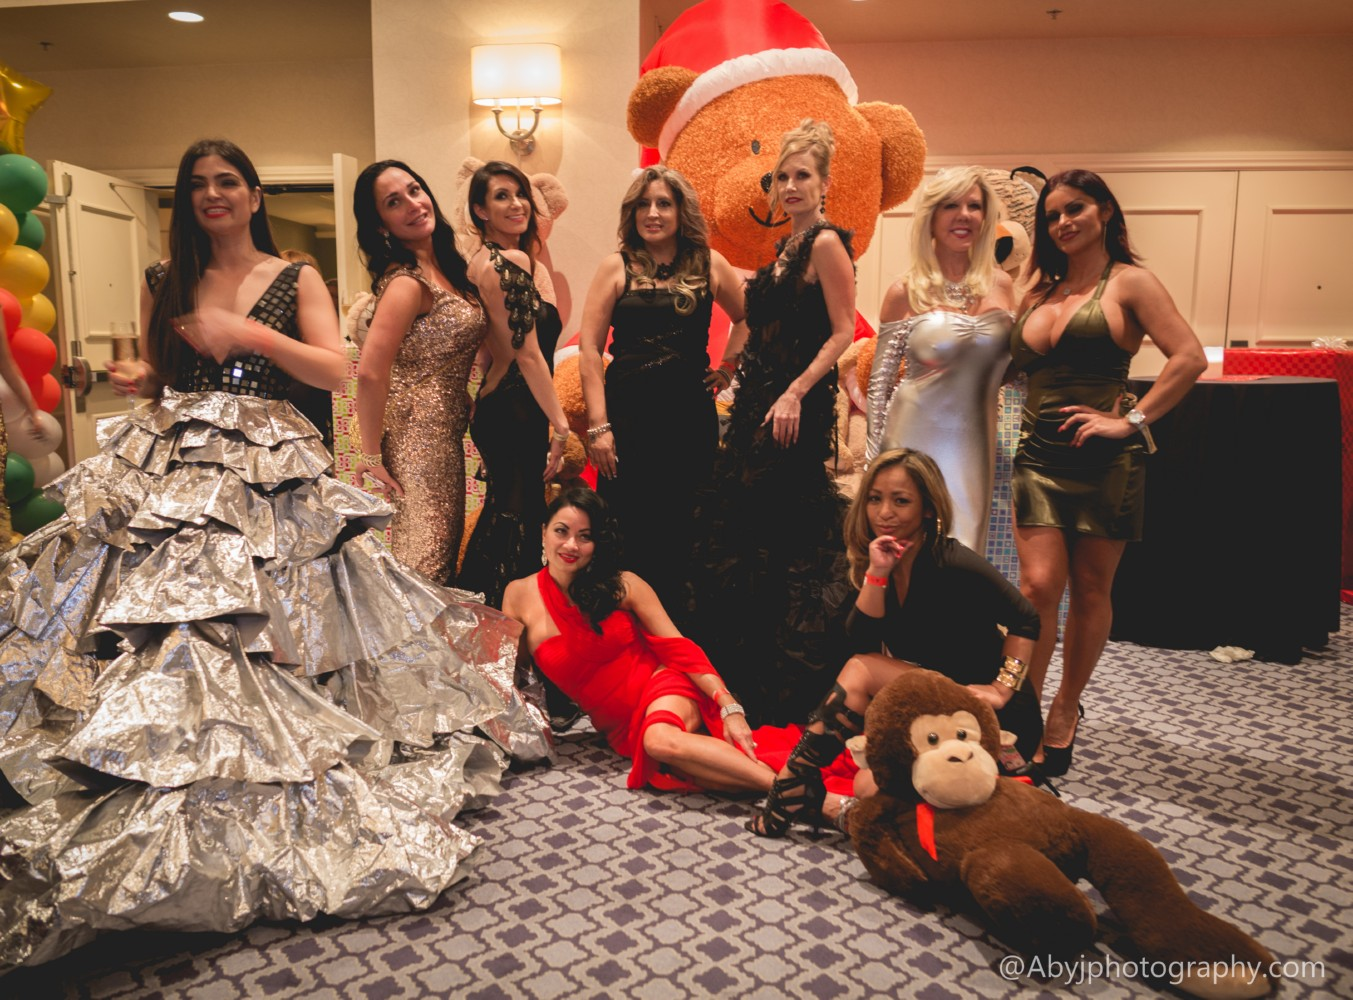 ABYJ_Photography_2016_Teddy_Ball - 342.jpg